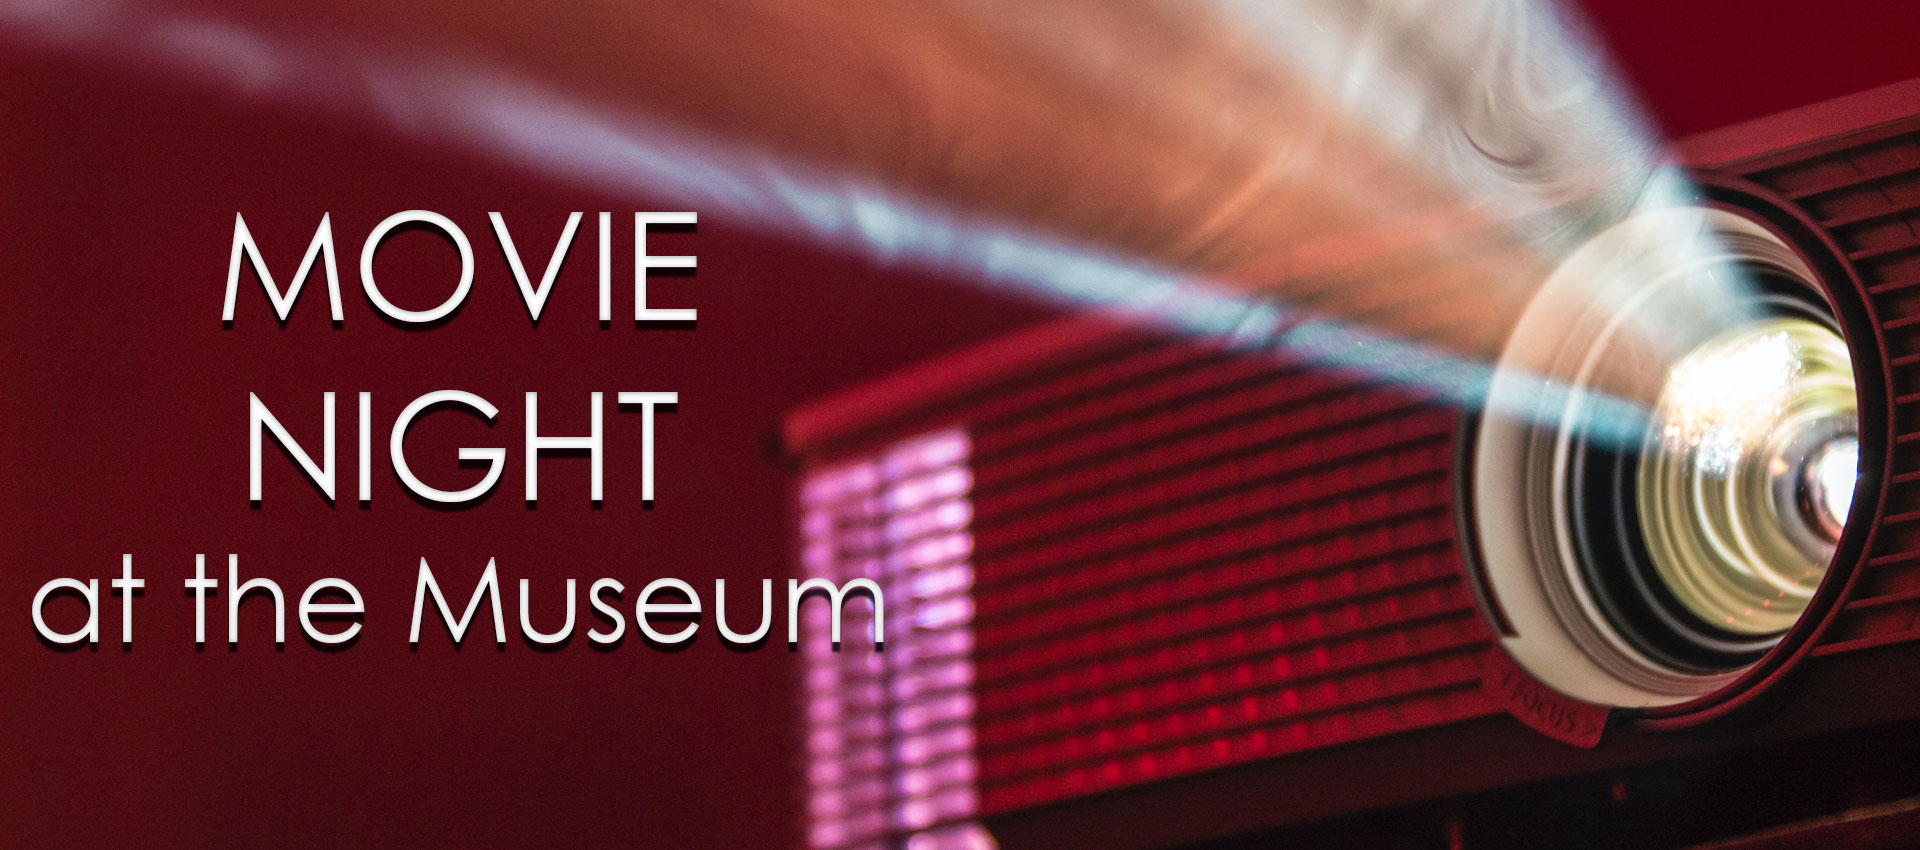 Text: Movie Night at the Museum, with light from a projector